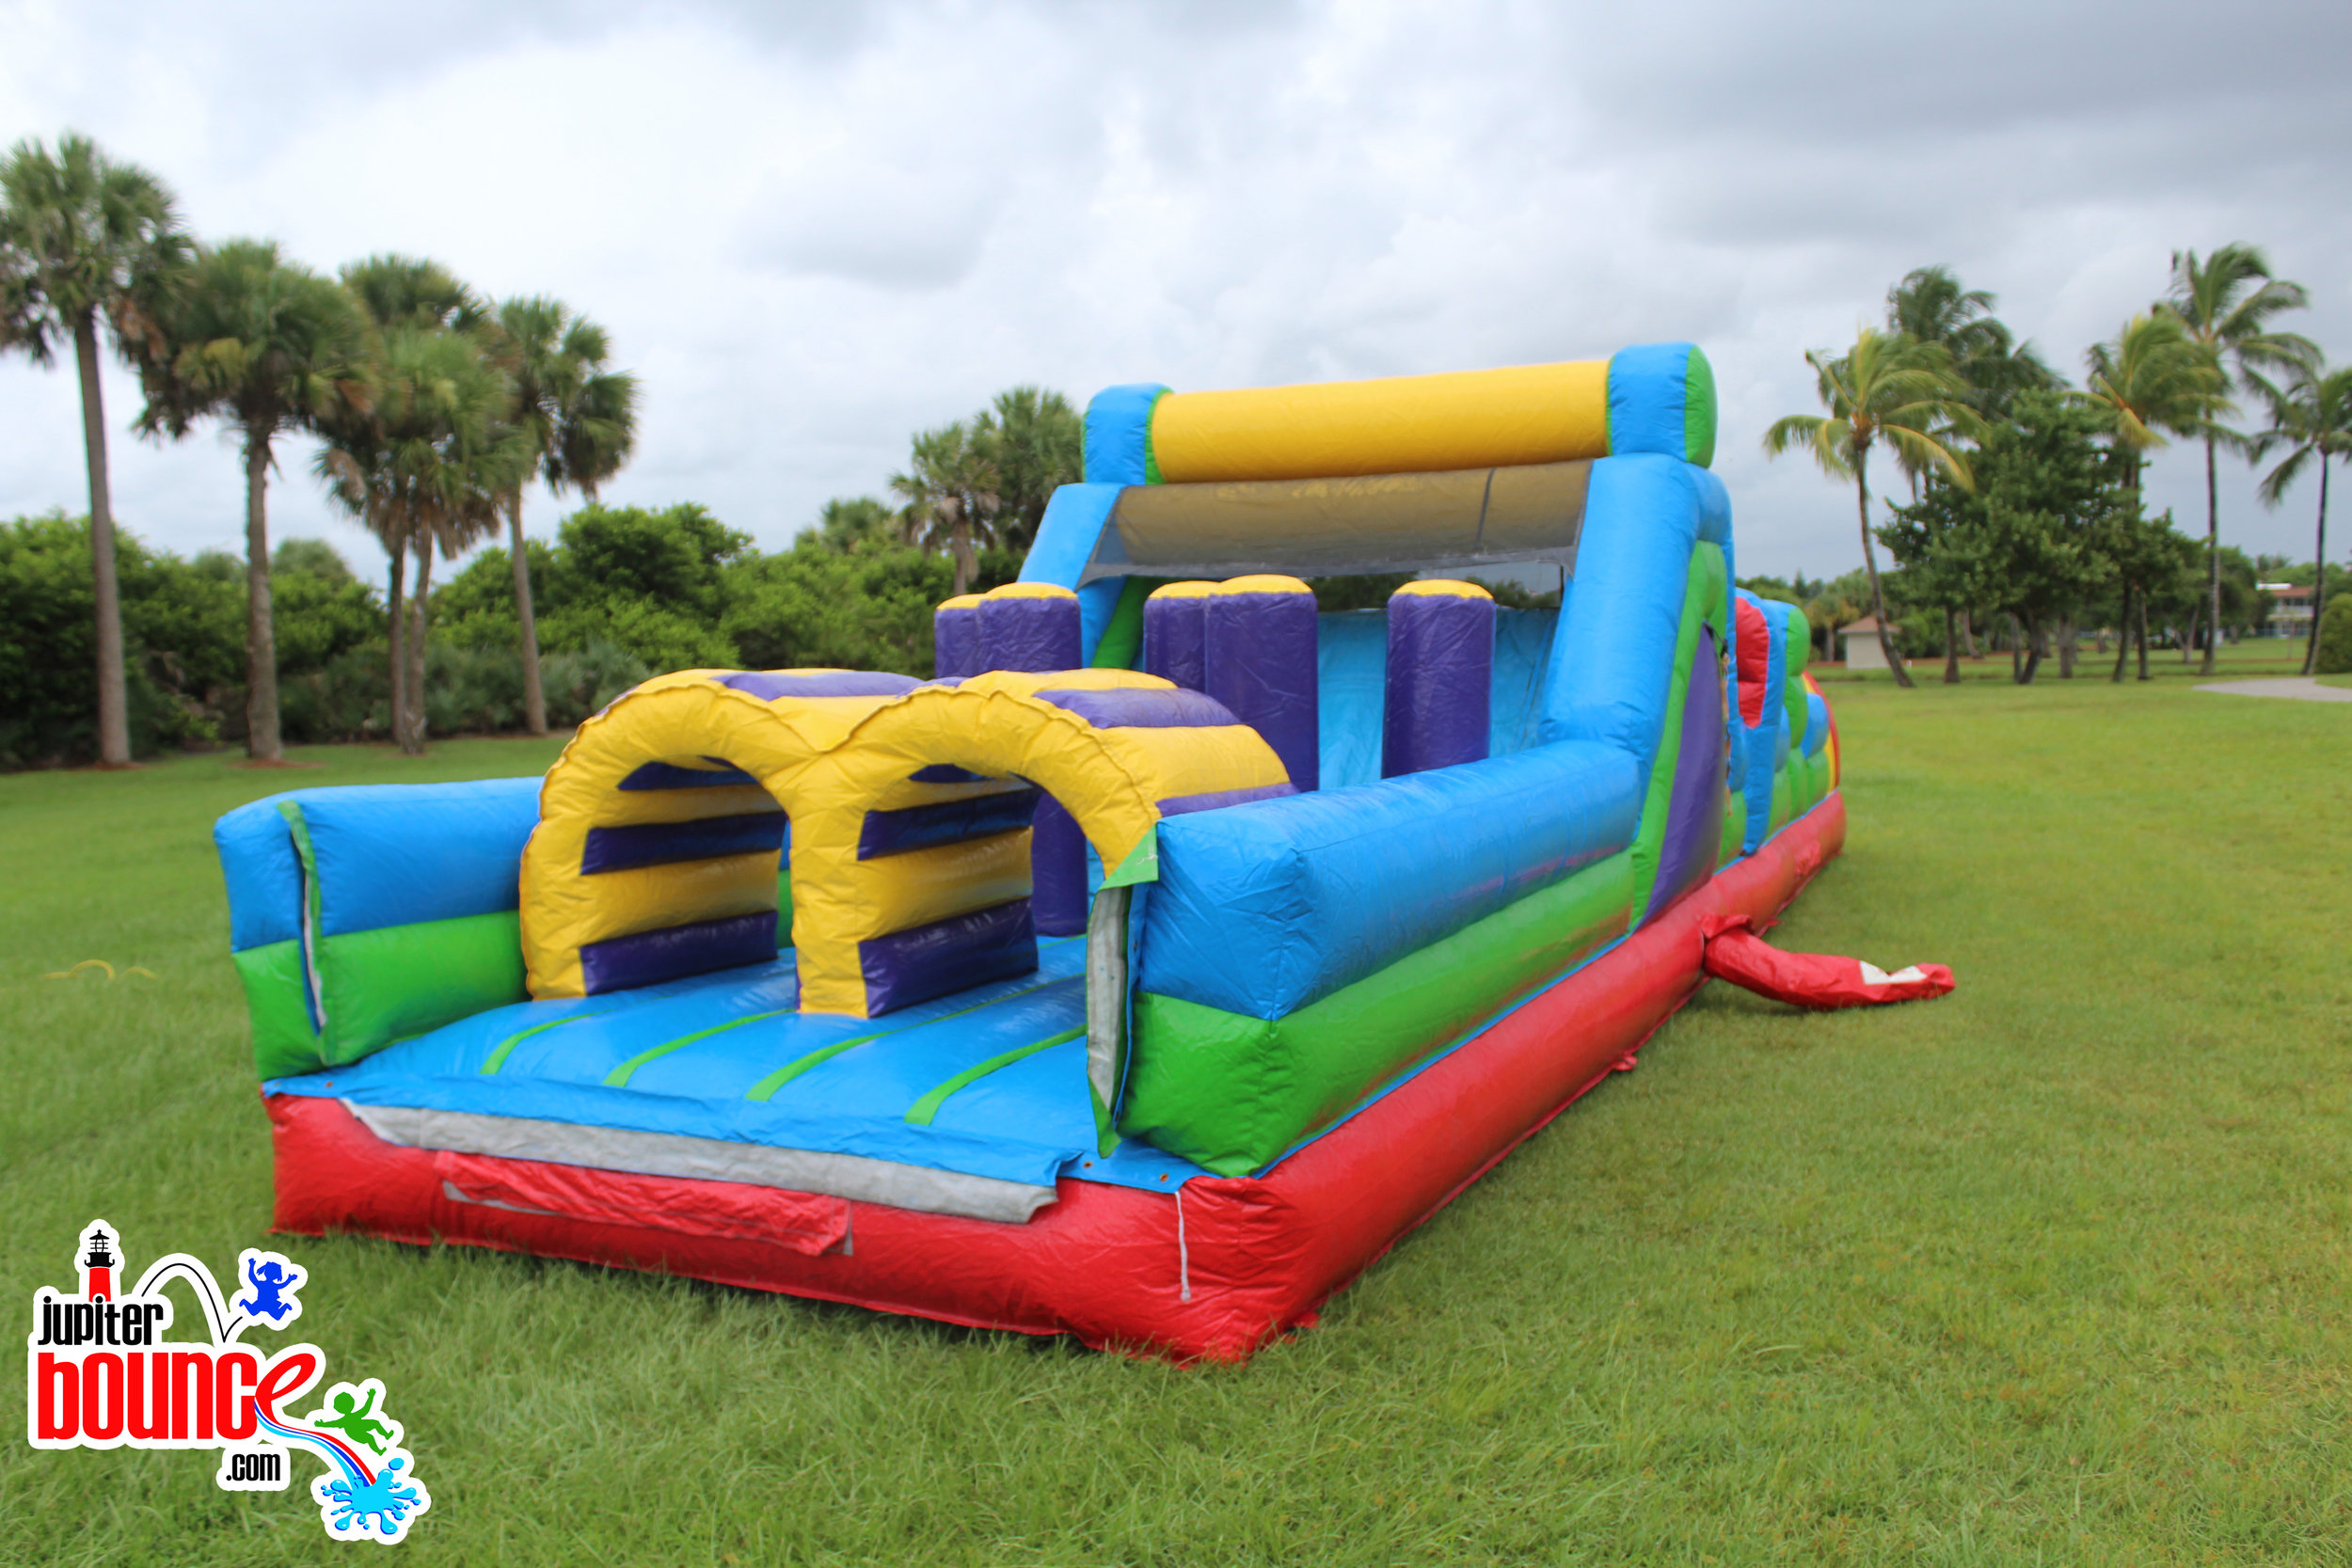 40ftobstaclecourse-jupiterbouncehouse-martincounty-indiantownrd33458-hobesound-portsalerno.jpg